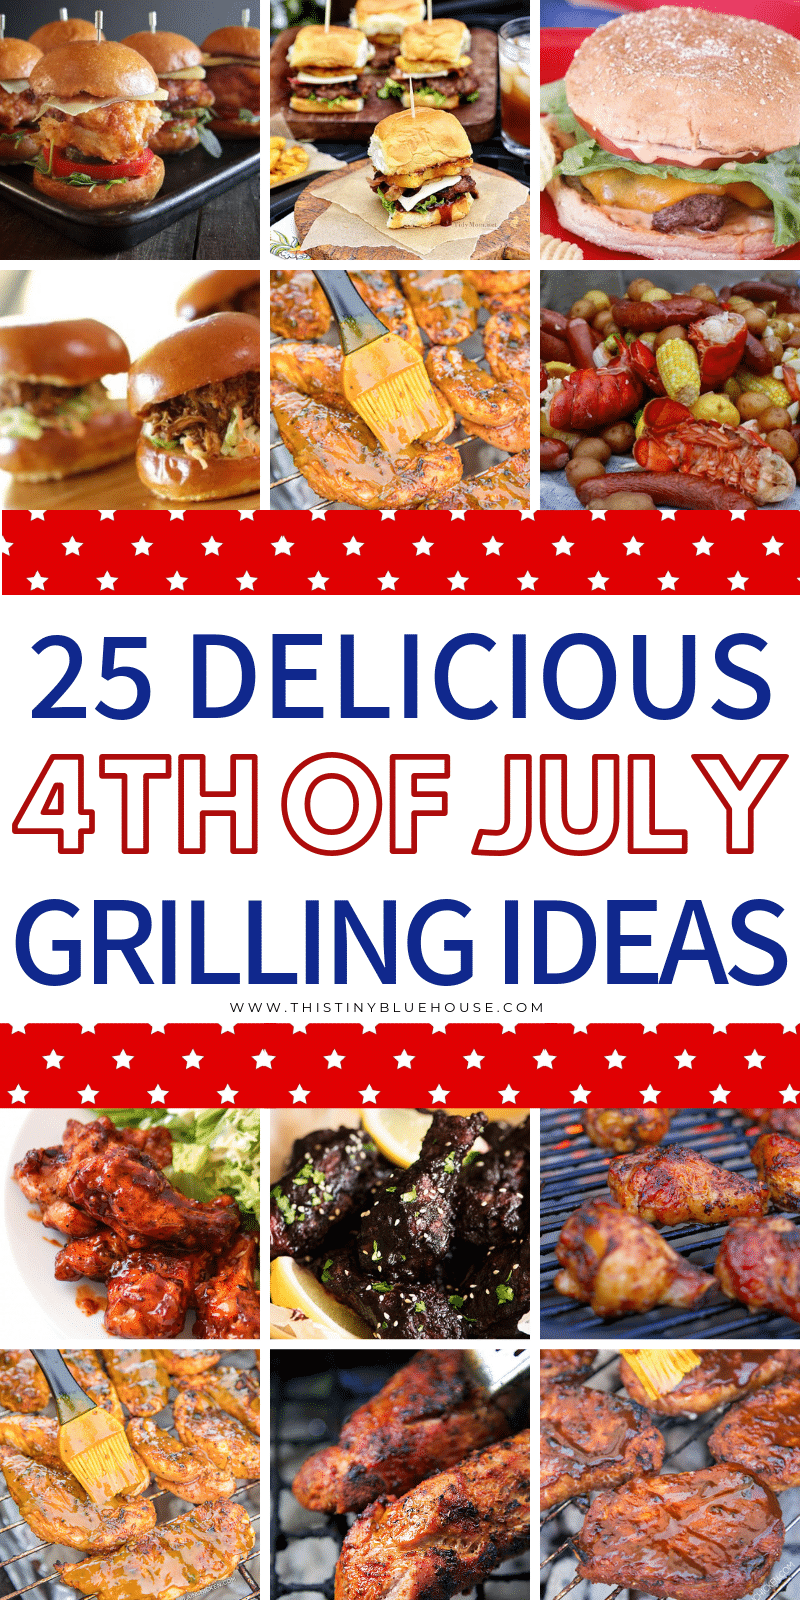 Looking for delicious BBQ Ideas for your 4th of July or Canada Day BBQ? Here are 25 easy and delicious ideas that are perfect for your patriotic cookout. #4thofjuly #4thofjulybbq #4thofjulybbqfood #4thofjulybbqideas #4thofjulybbqmenu #4thofjulybbwrecipes